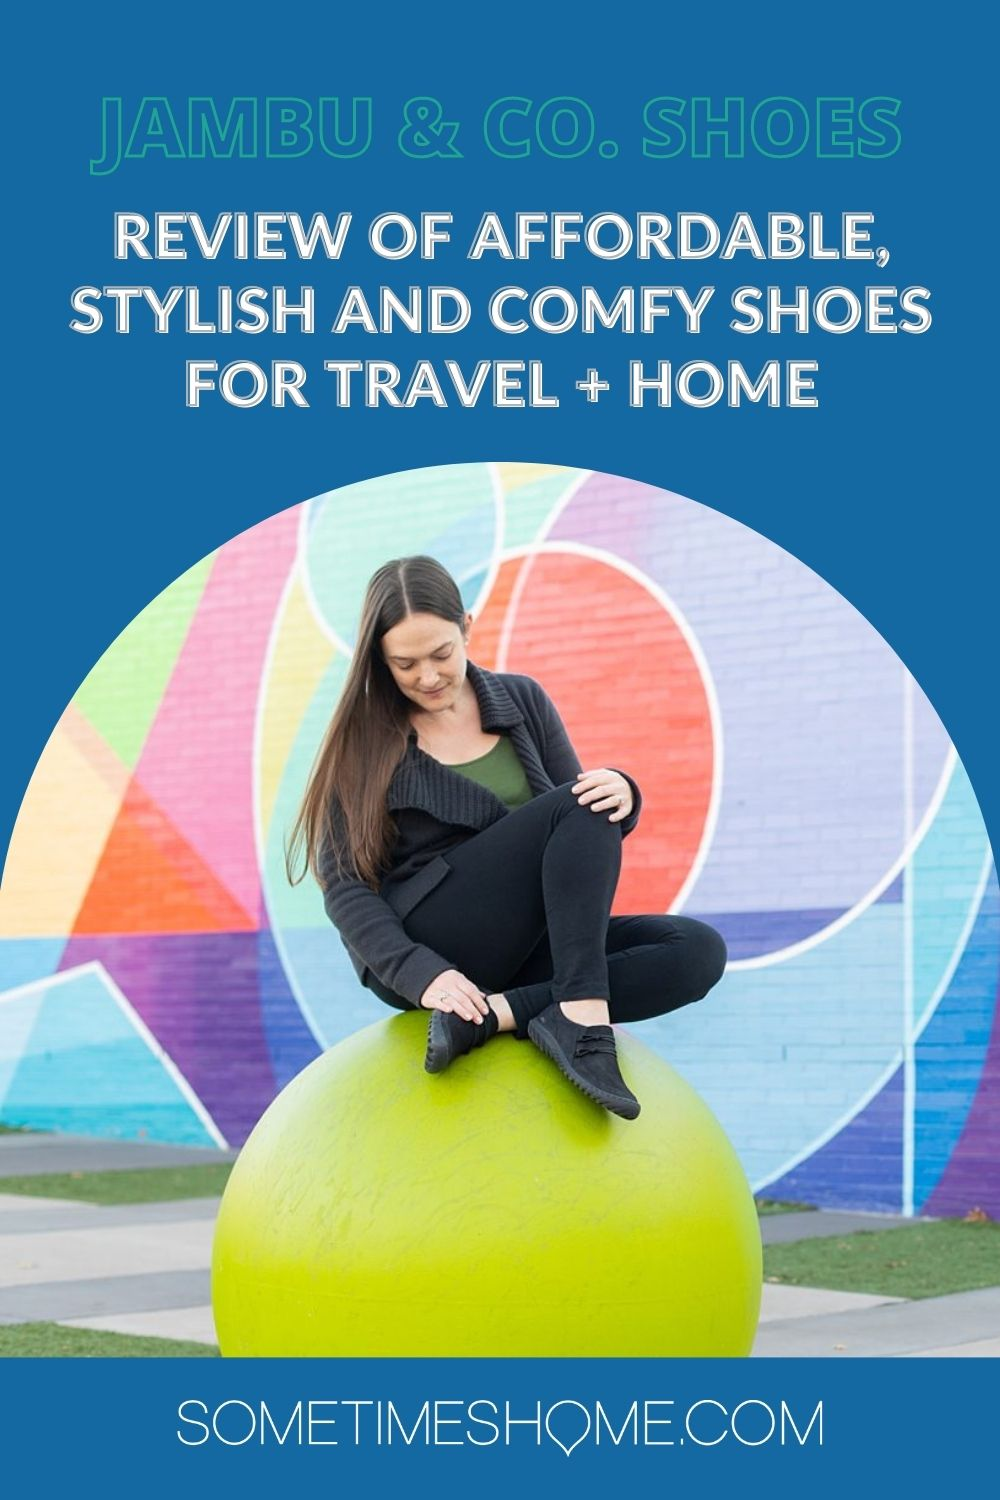 """Pinterest image with a photo of a woman sitting on a green sphere with a colorful mural behind her, with """"Jambu & Co. shoes, Review of Affordable, Stylish and Comfy shoes for travel + home"""" text on it."""